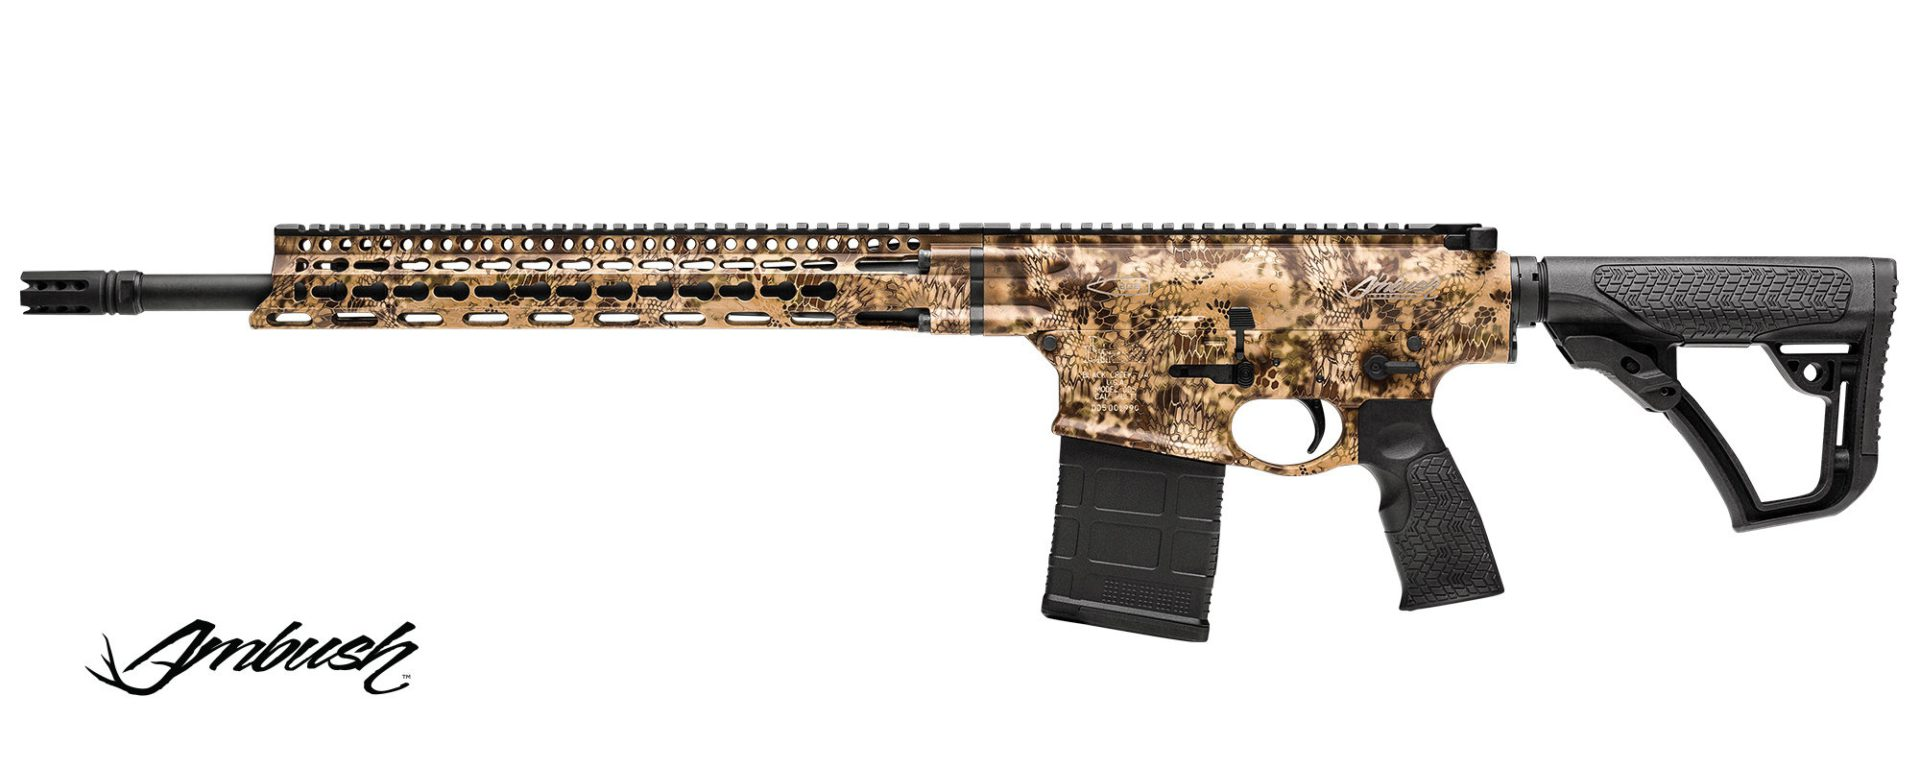 Daniel Defense Ambush .308 Hunting Rifle 2